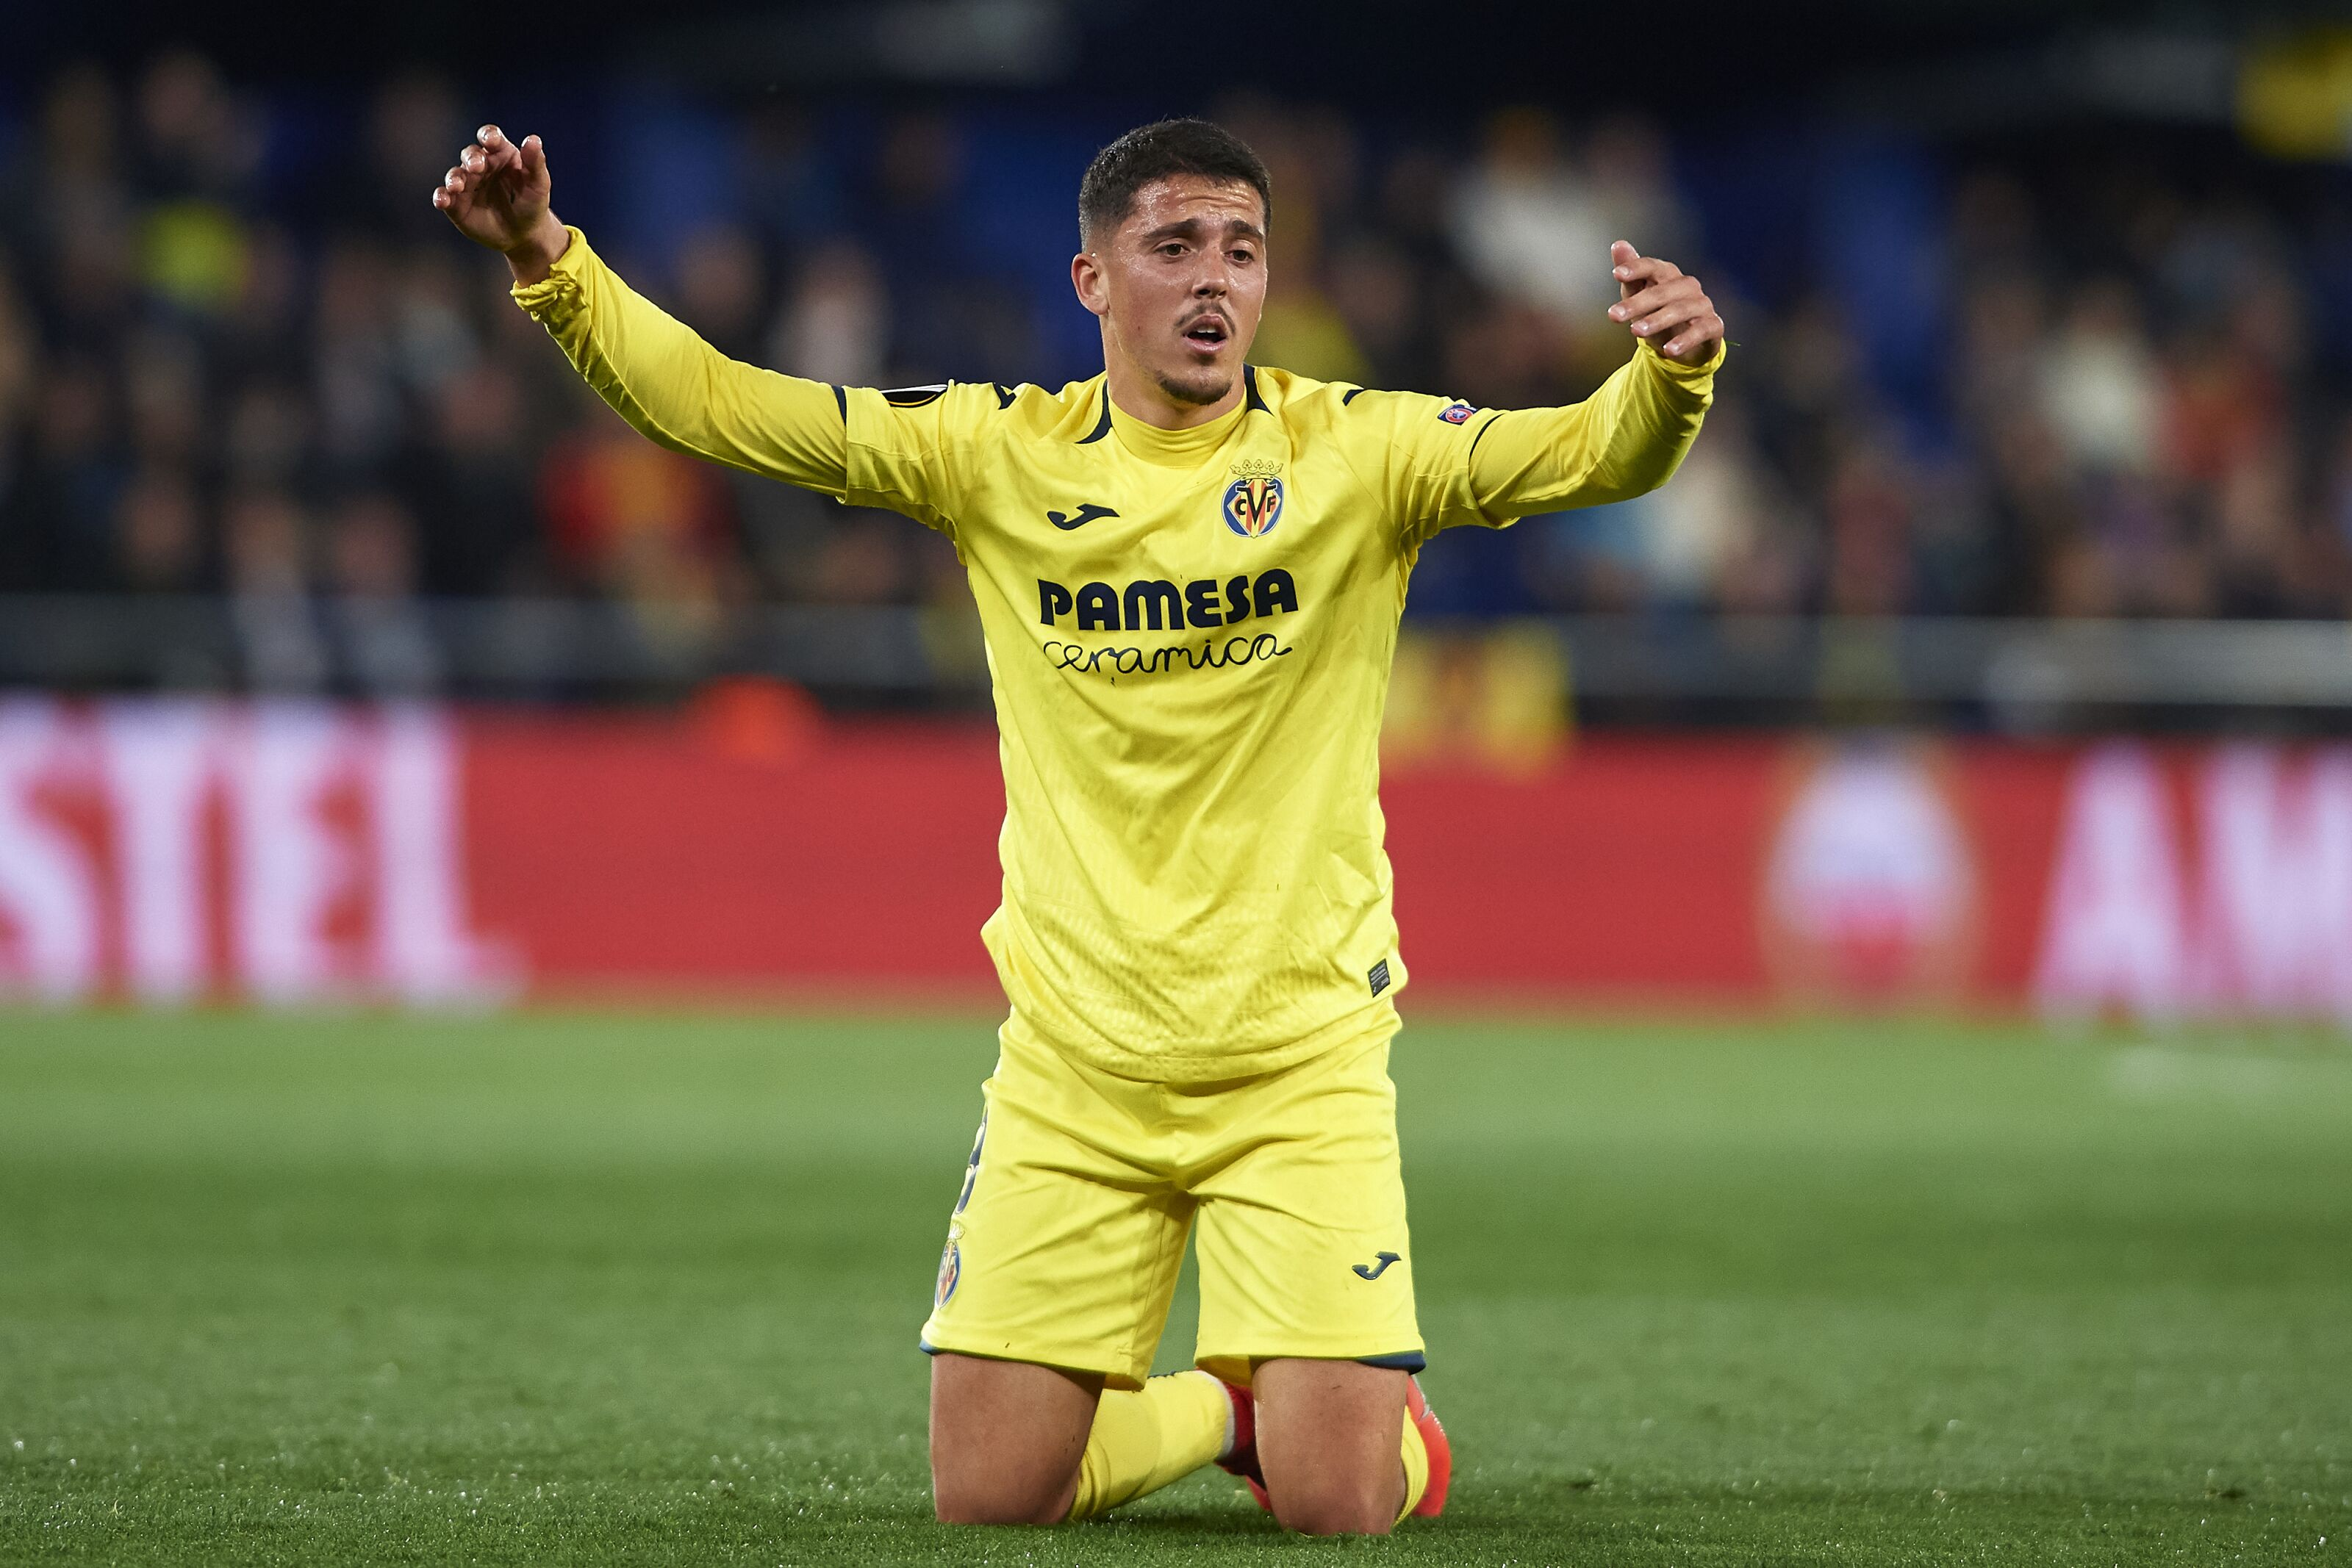 Who better to sign for the Hammers than Pablo Fornals?